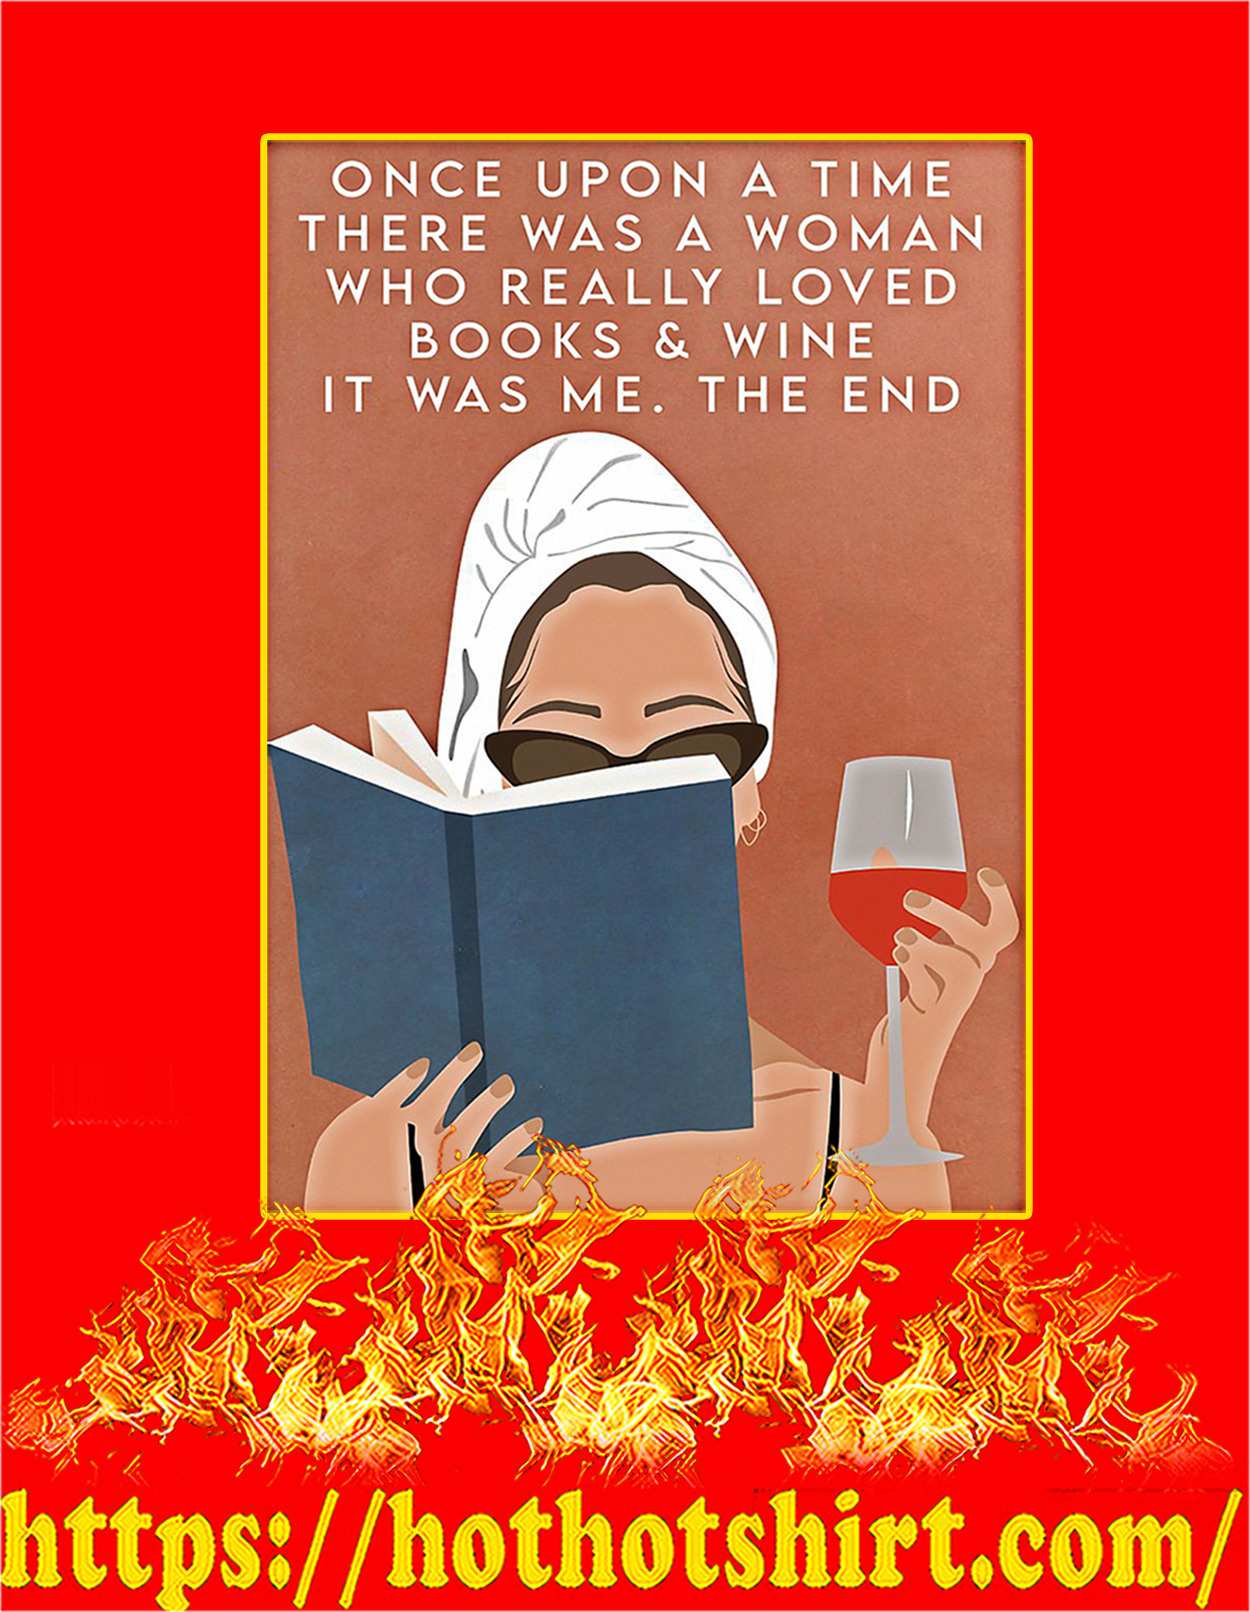 Once upon a time there was a woman who really loved books and wine poster - A3